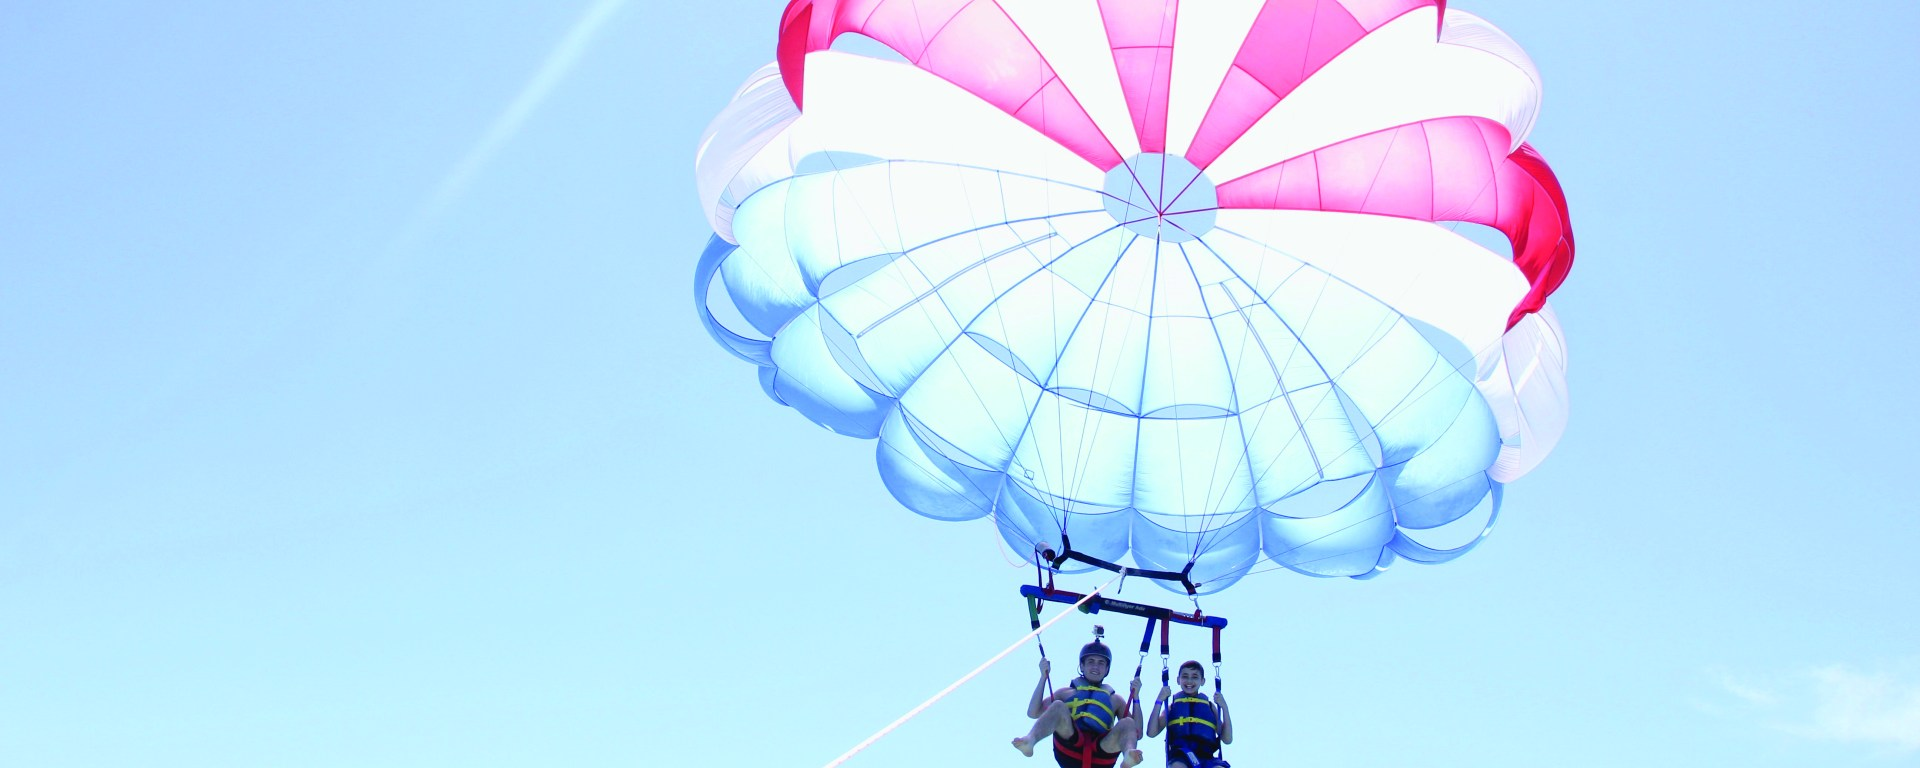 two boys parasailing with smiles on faces